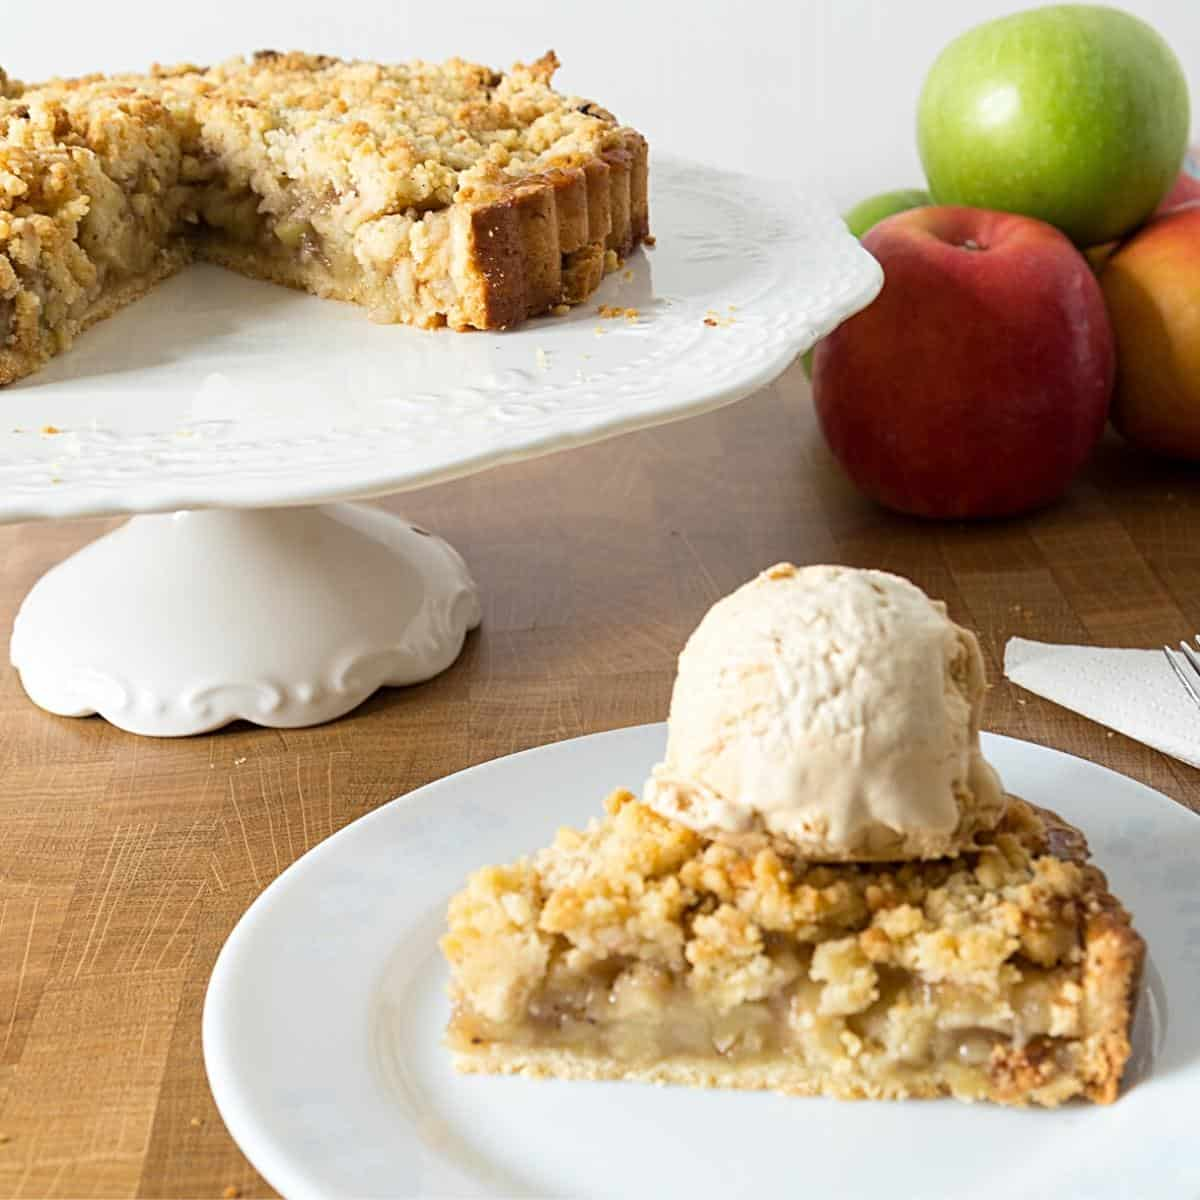 A slice of crumble tart topped with ice cream.